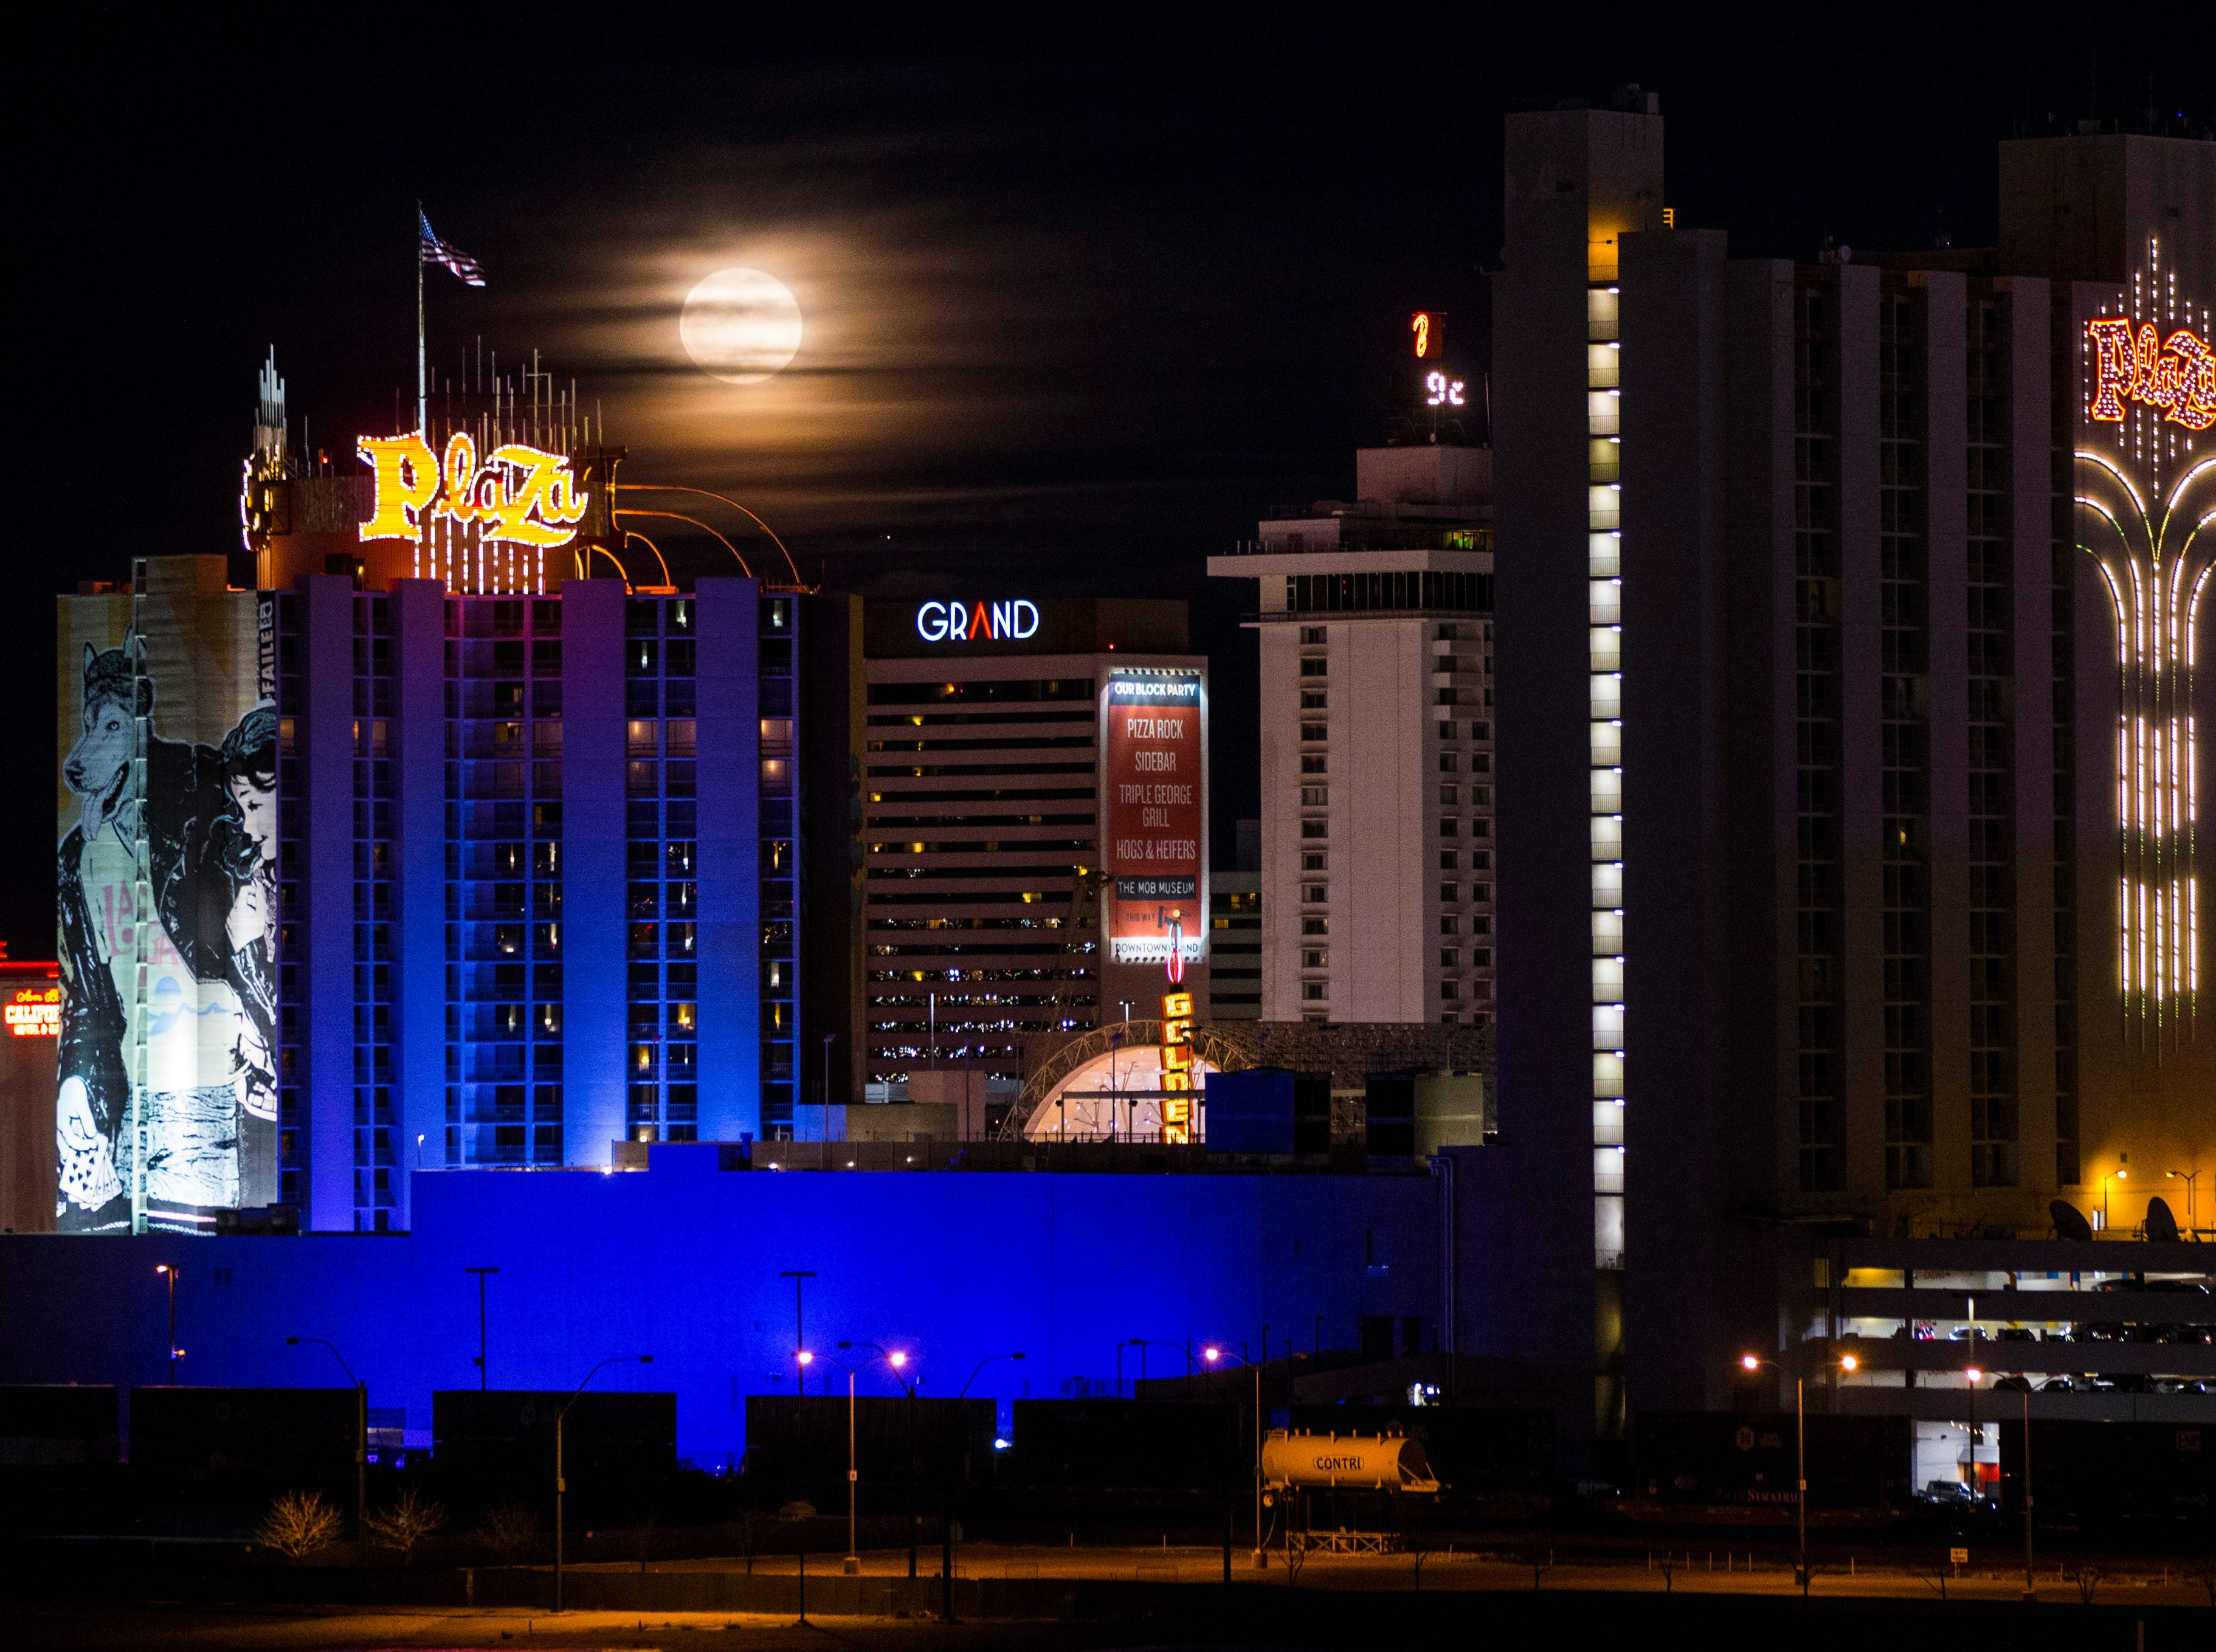 A super snow moon rises over the Plaza Hotel and Casino in downtown Las Vegas on Tuesday, Feb. 19, 2019. (Chase Stevens/Las Vegas Review-Journal via AP)